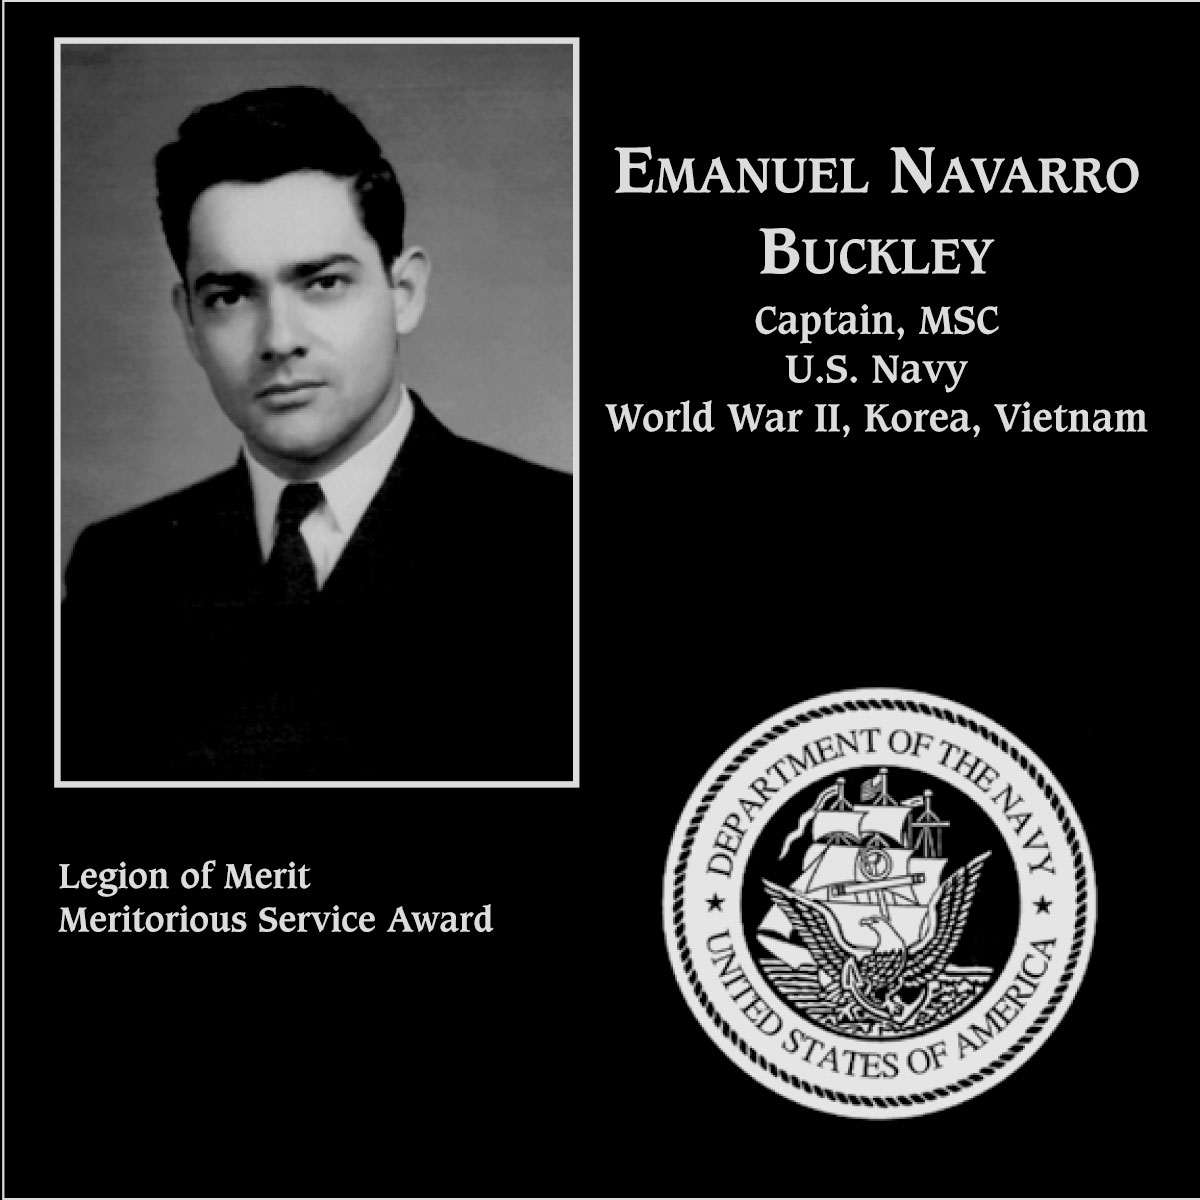 Emanuel Navarro Buckley